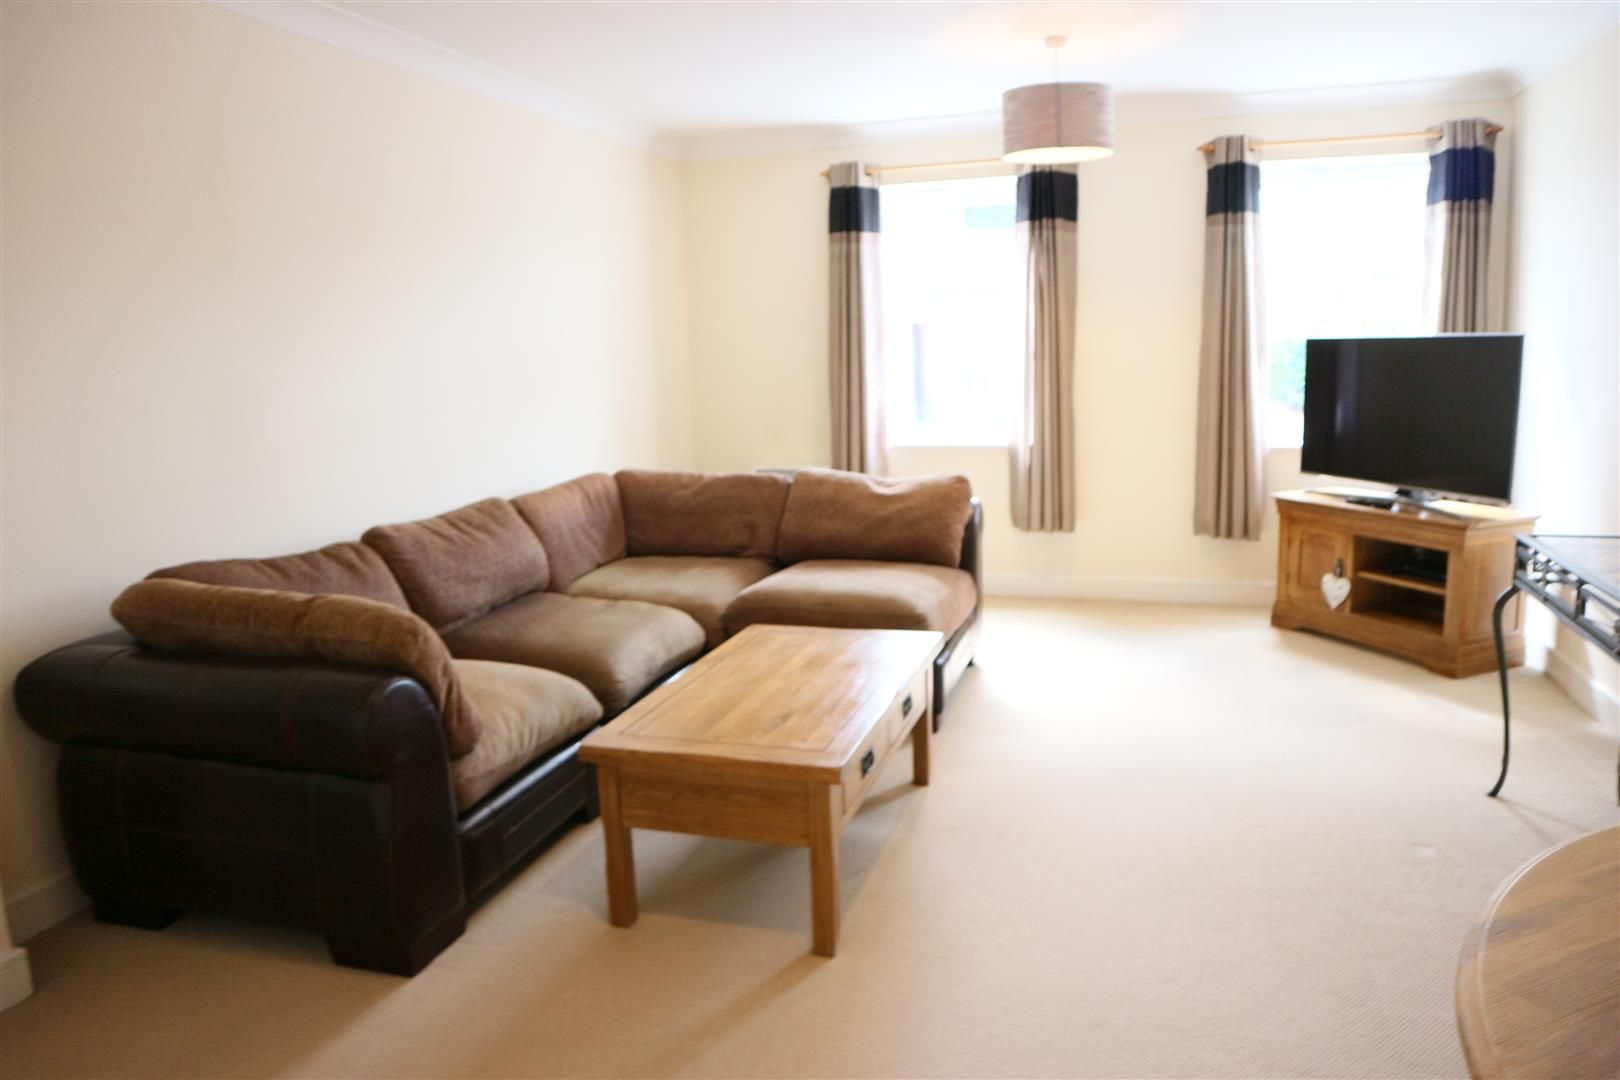 2 bed apartment for sale in Hagley 2